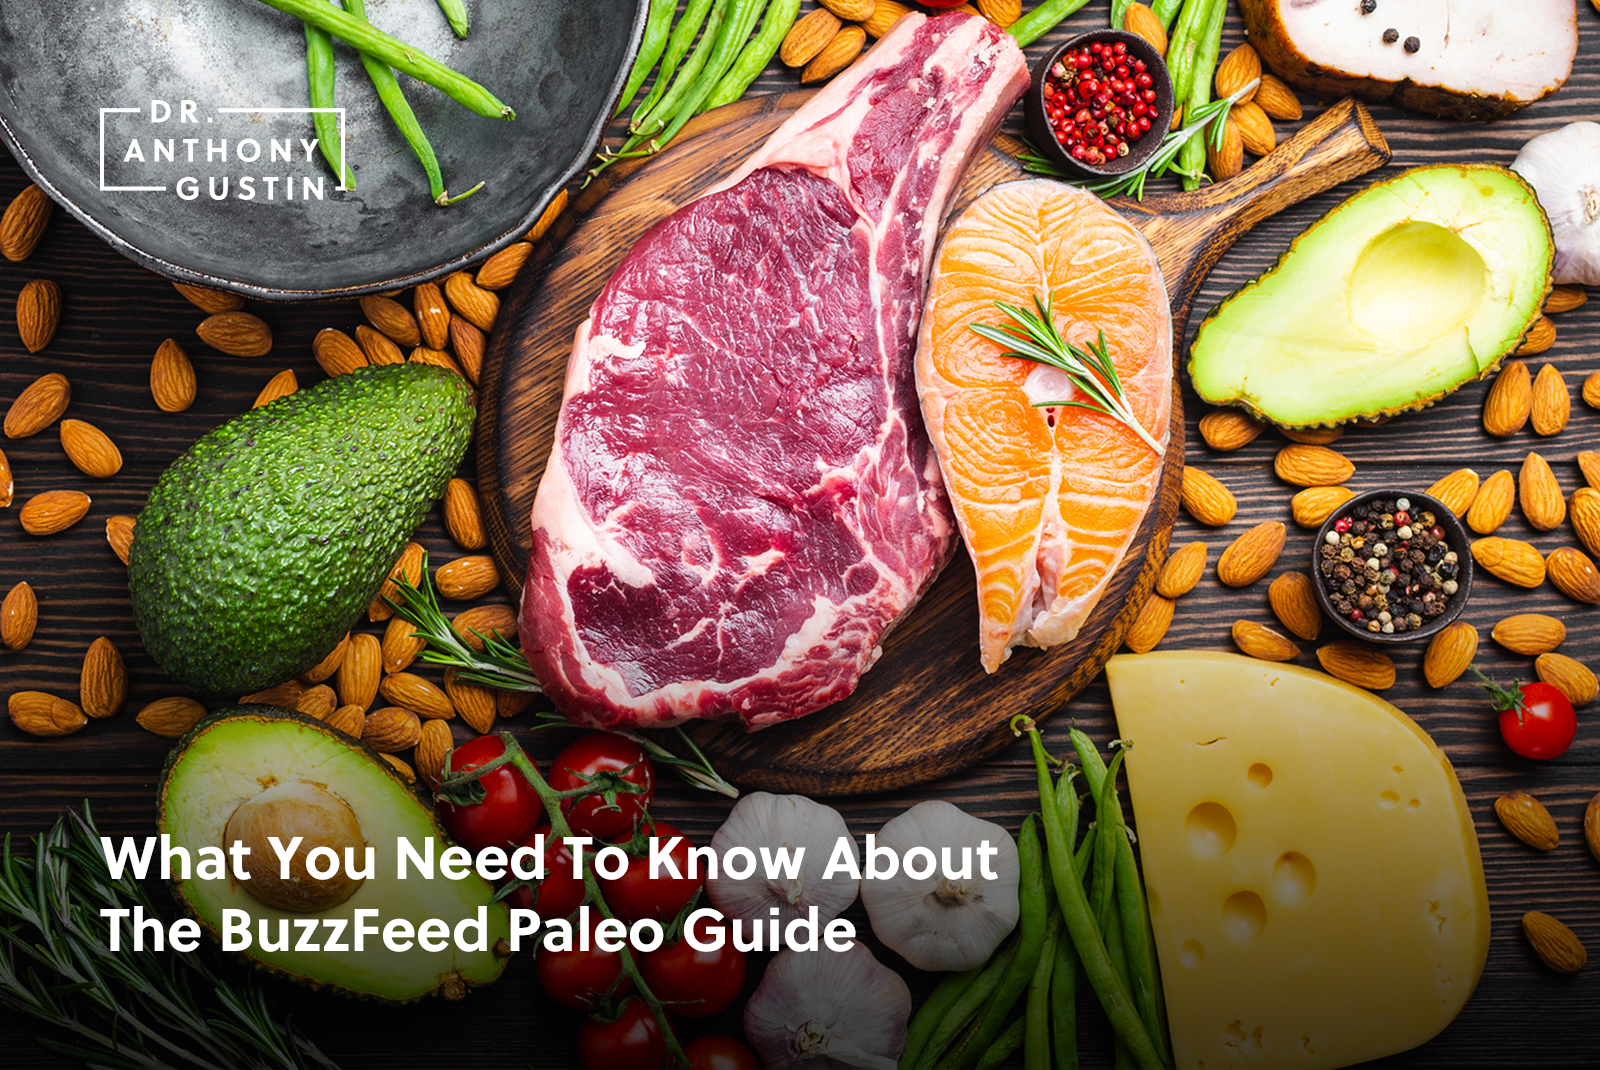 What You Need To Know About The BuzzFeed Paleo Guide